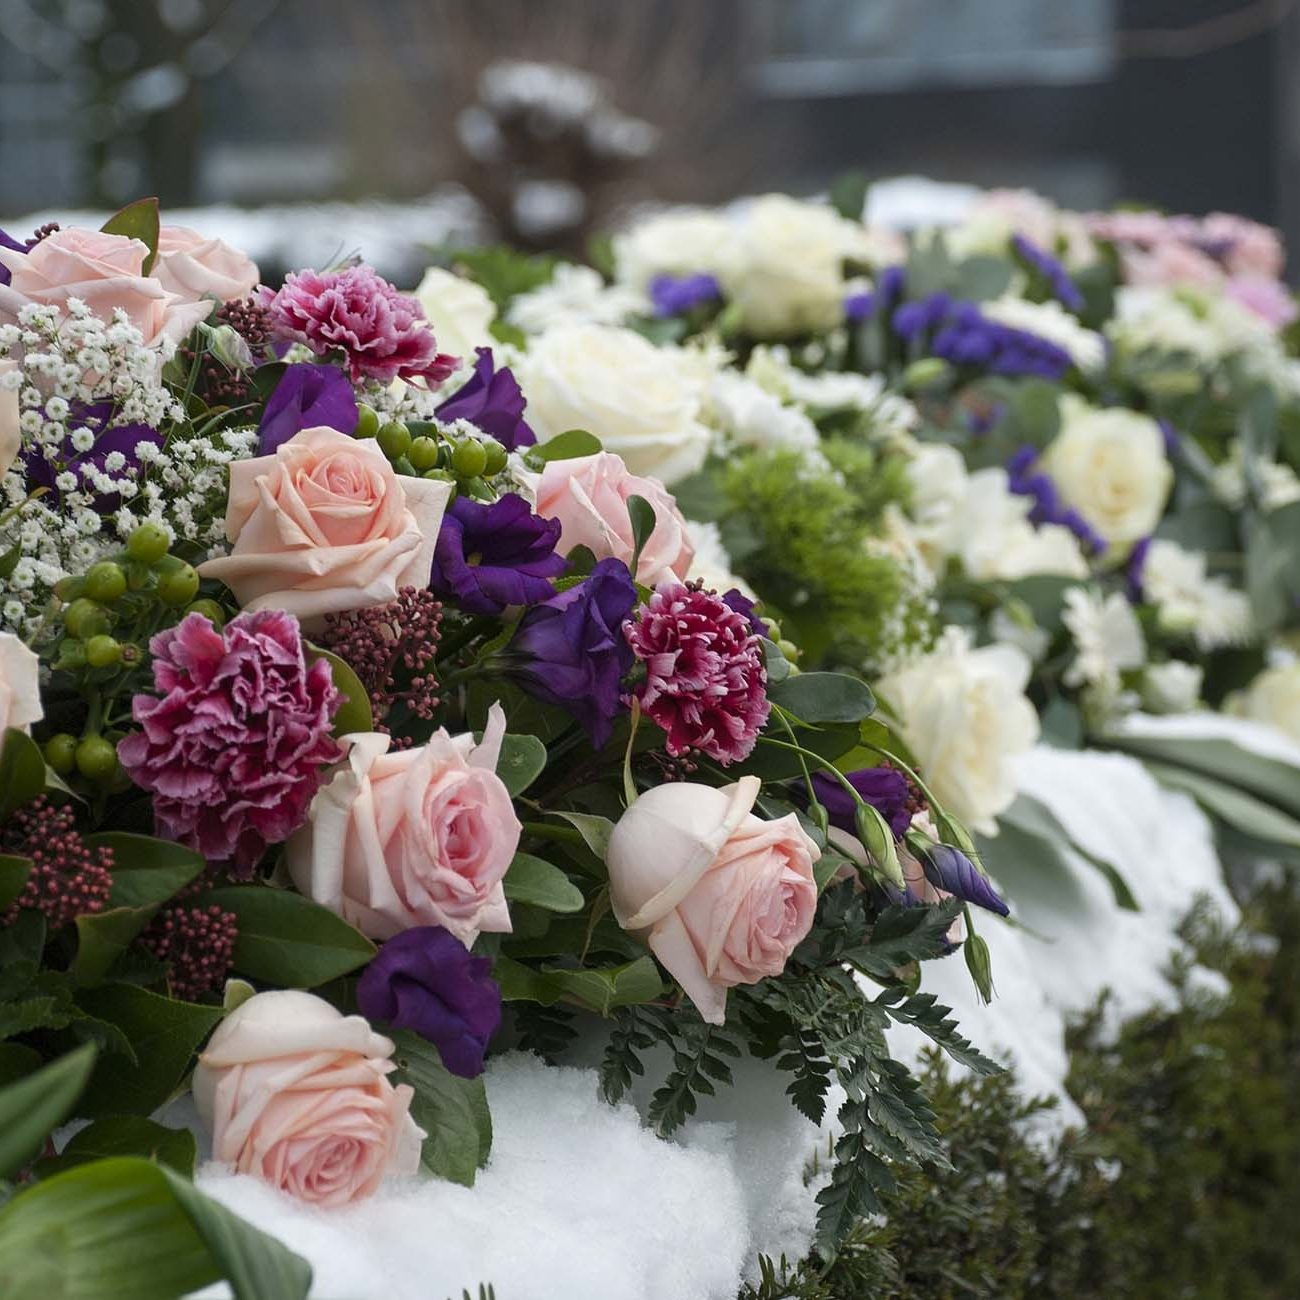 Several funeral flowers arrangements in the snow on a hedge at the cemetery